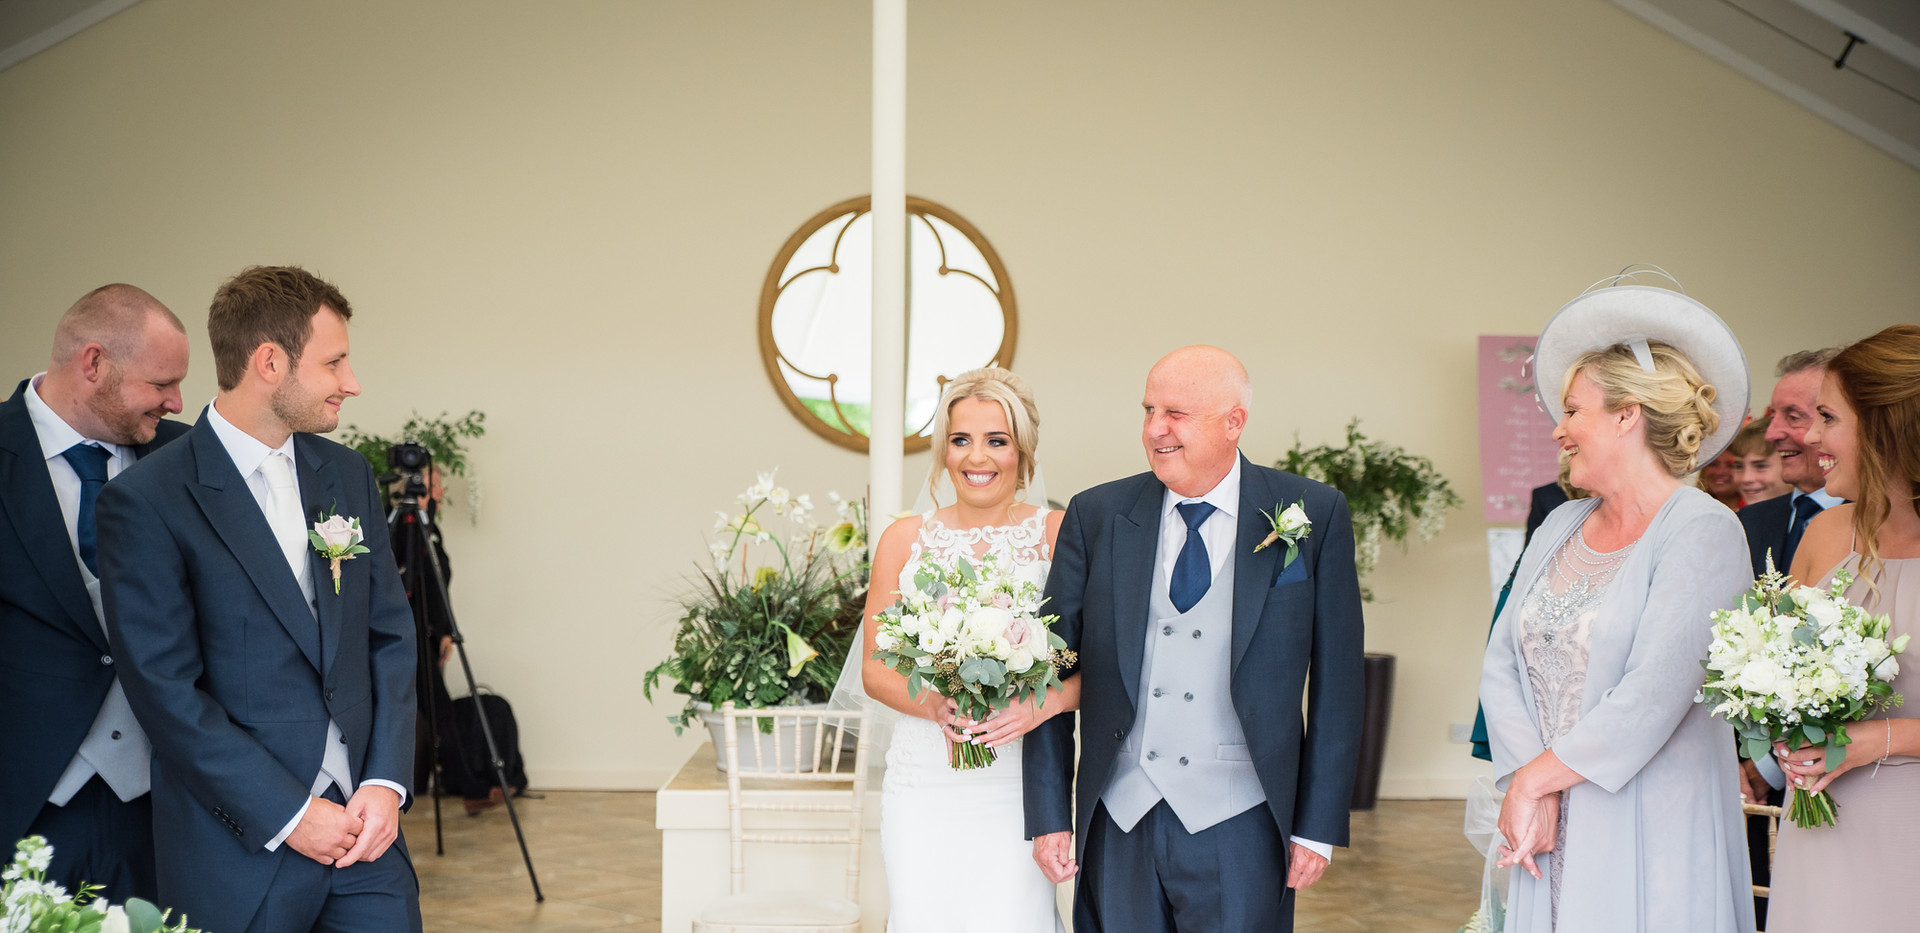 Combermere Abbey Wedding Photography___1